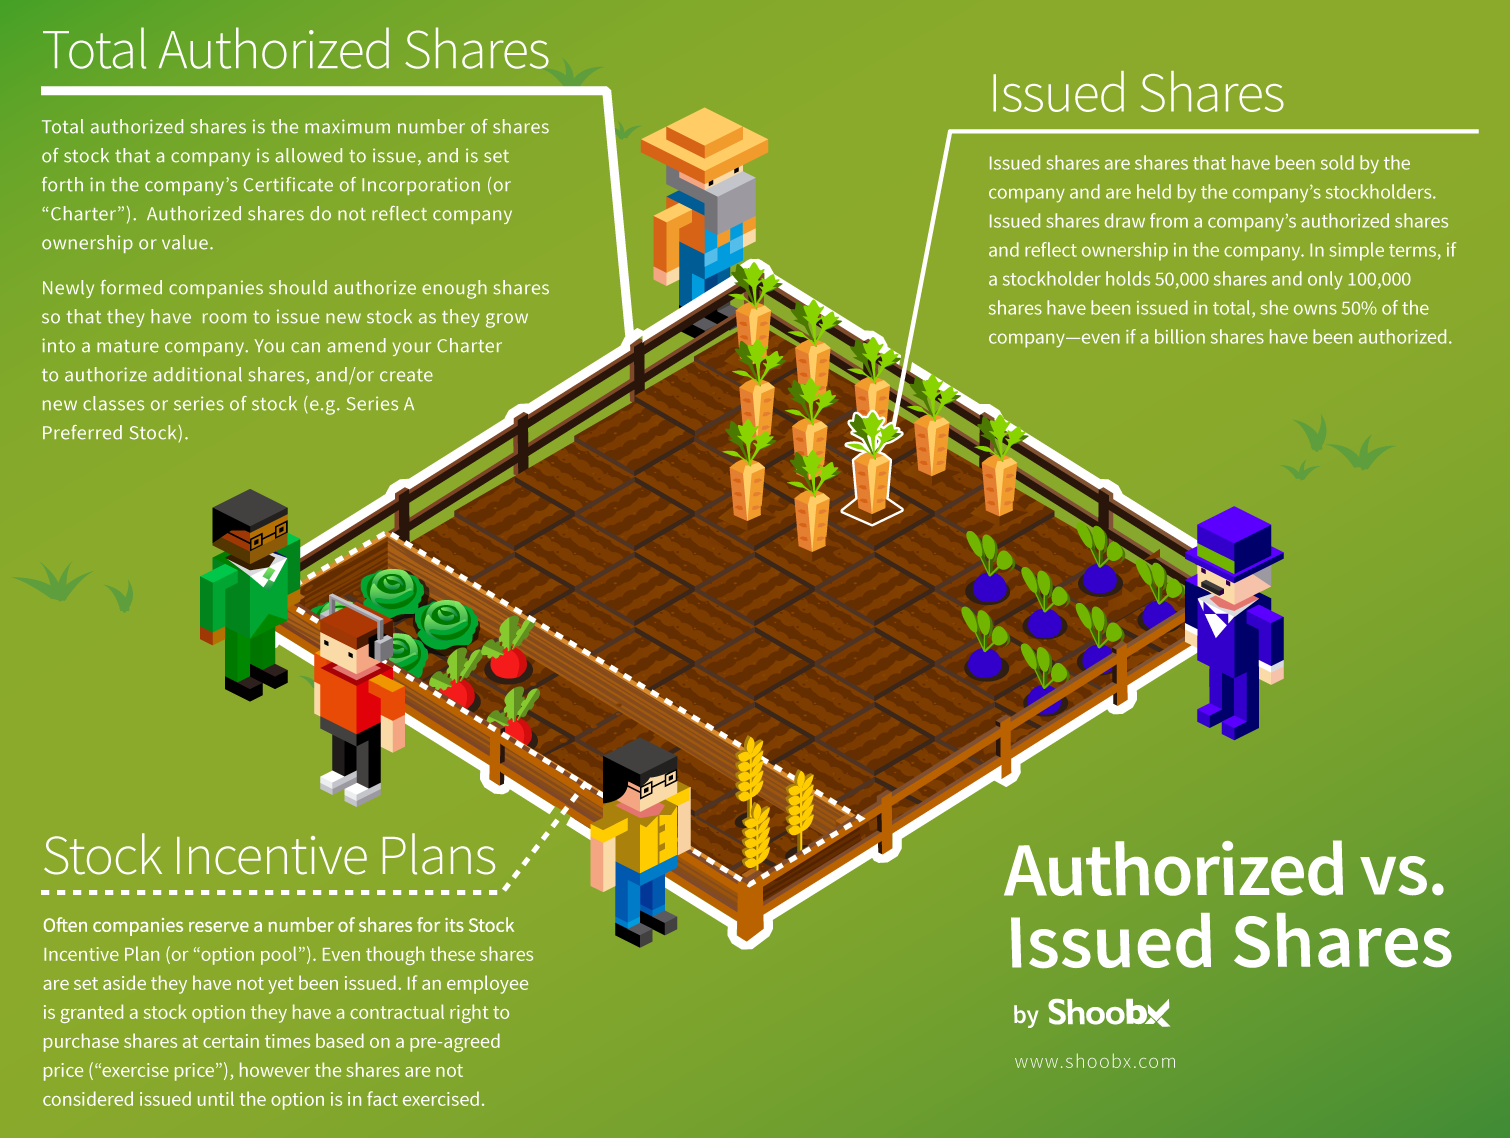 shoobx-authorized-issued-infographic